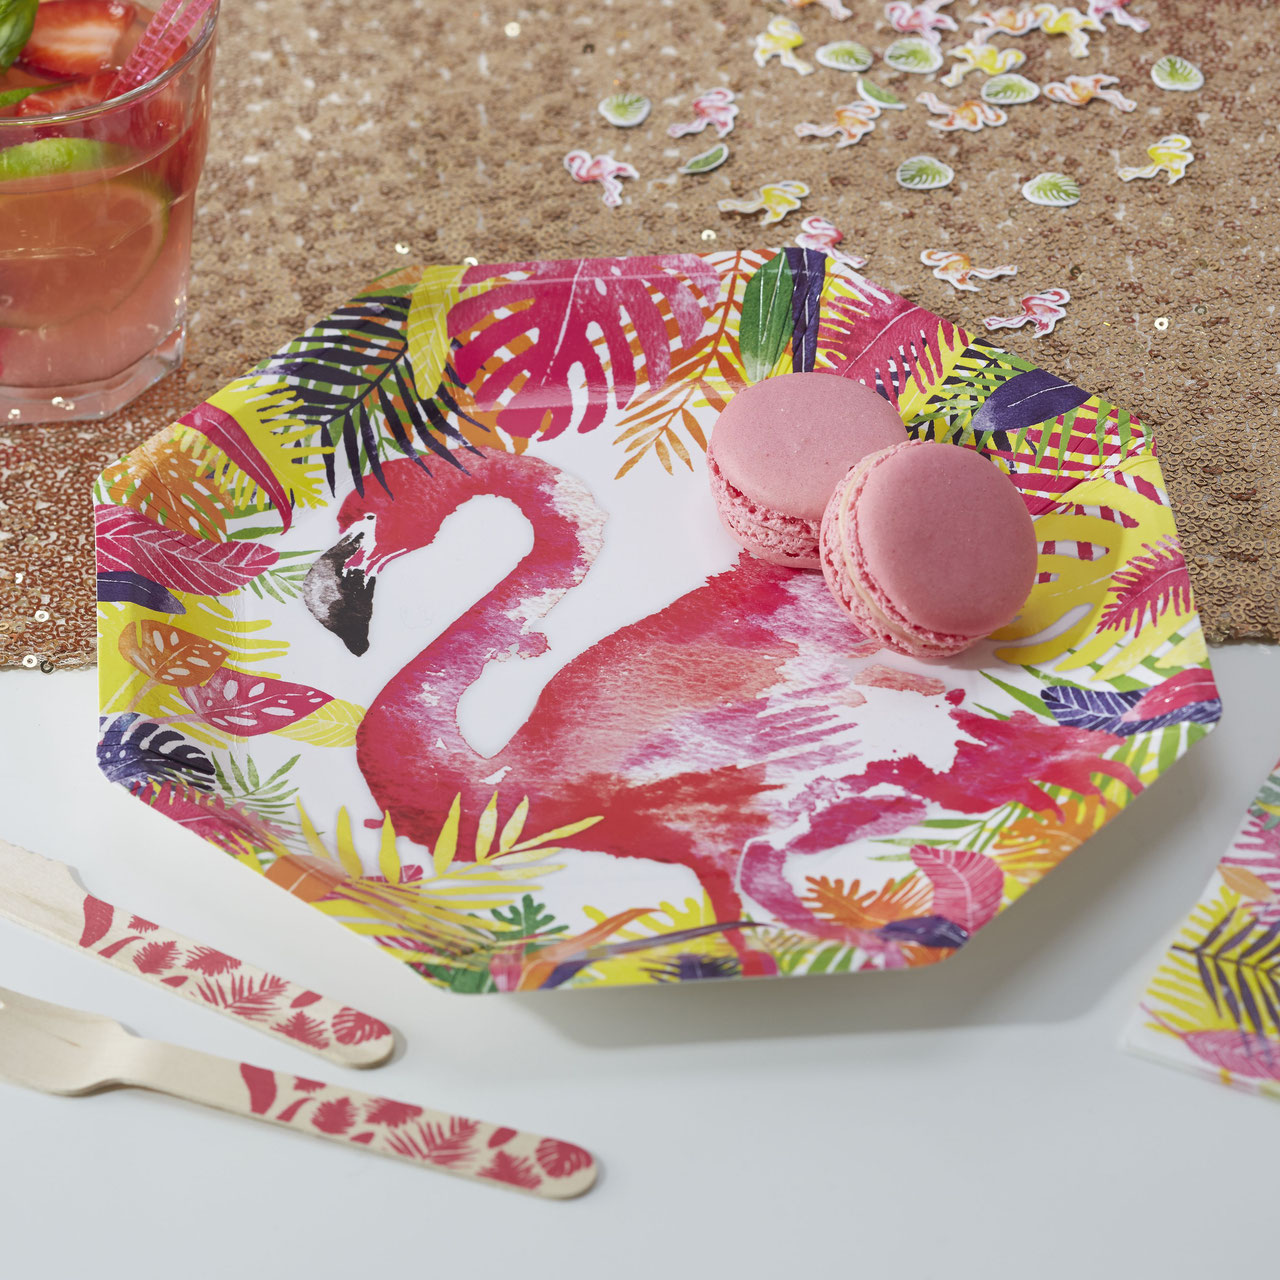 D coration anniversaire flamant rose d co f te hawai tropicale d co design chambre b b - Deco anniversaire flamant rose ...